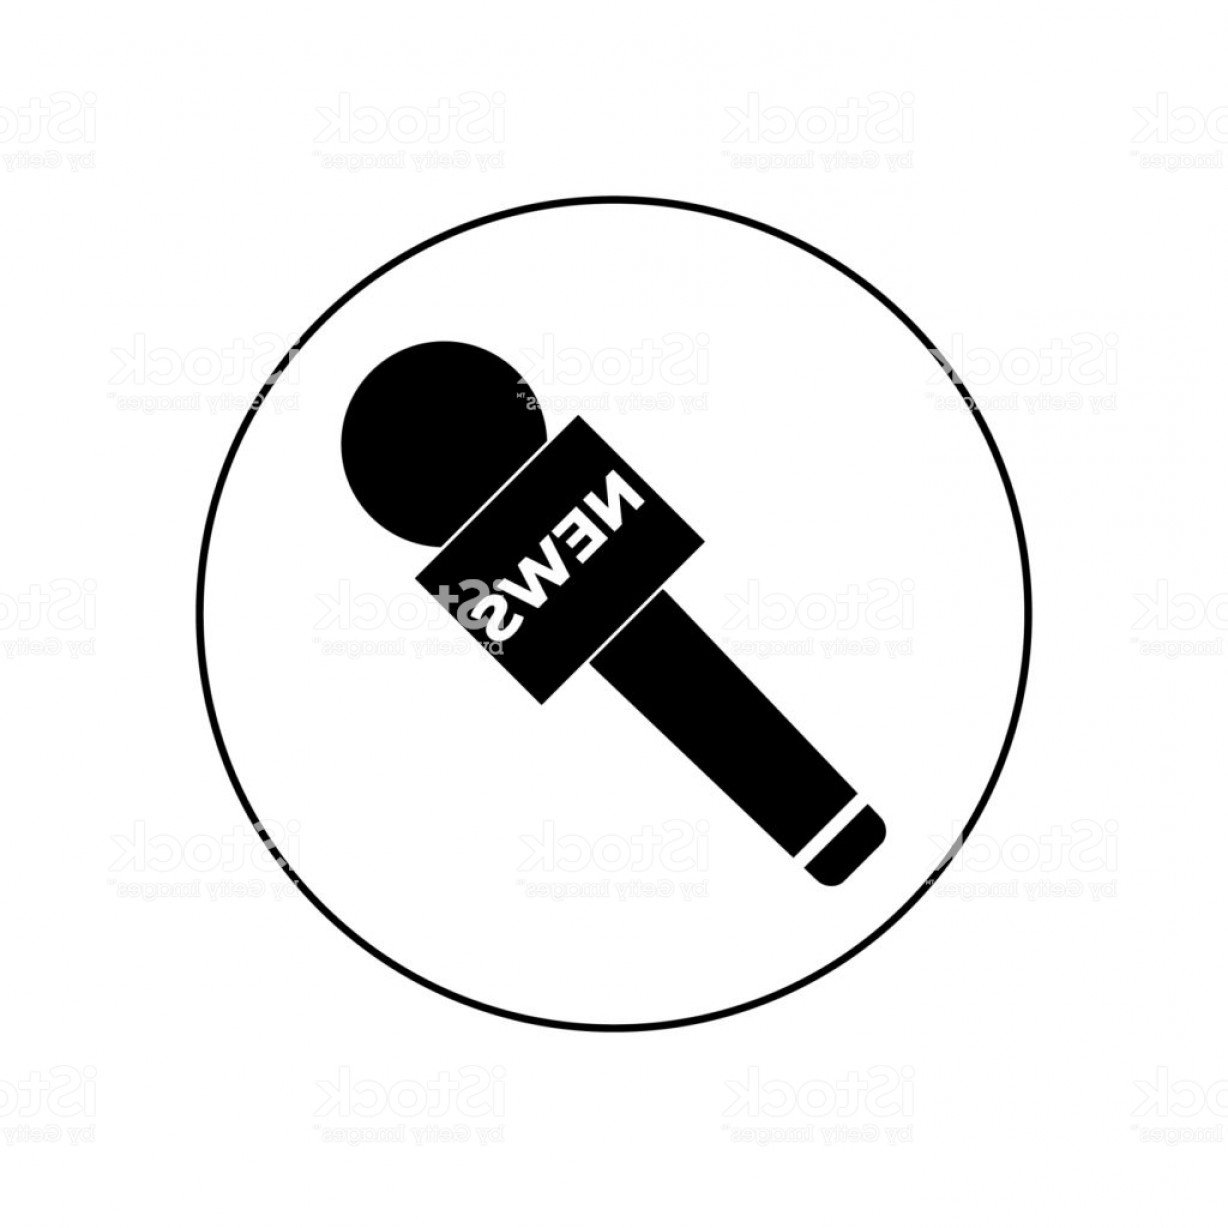 News Microphone Icon Vector: Vector News Microphone Icon Gm